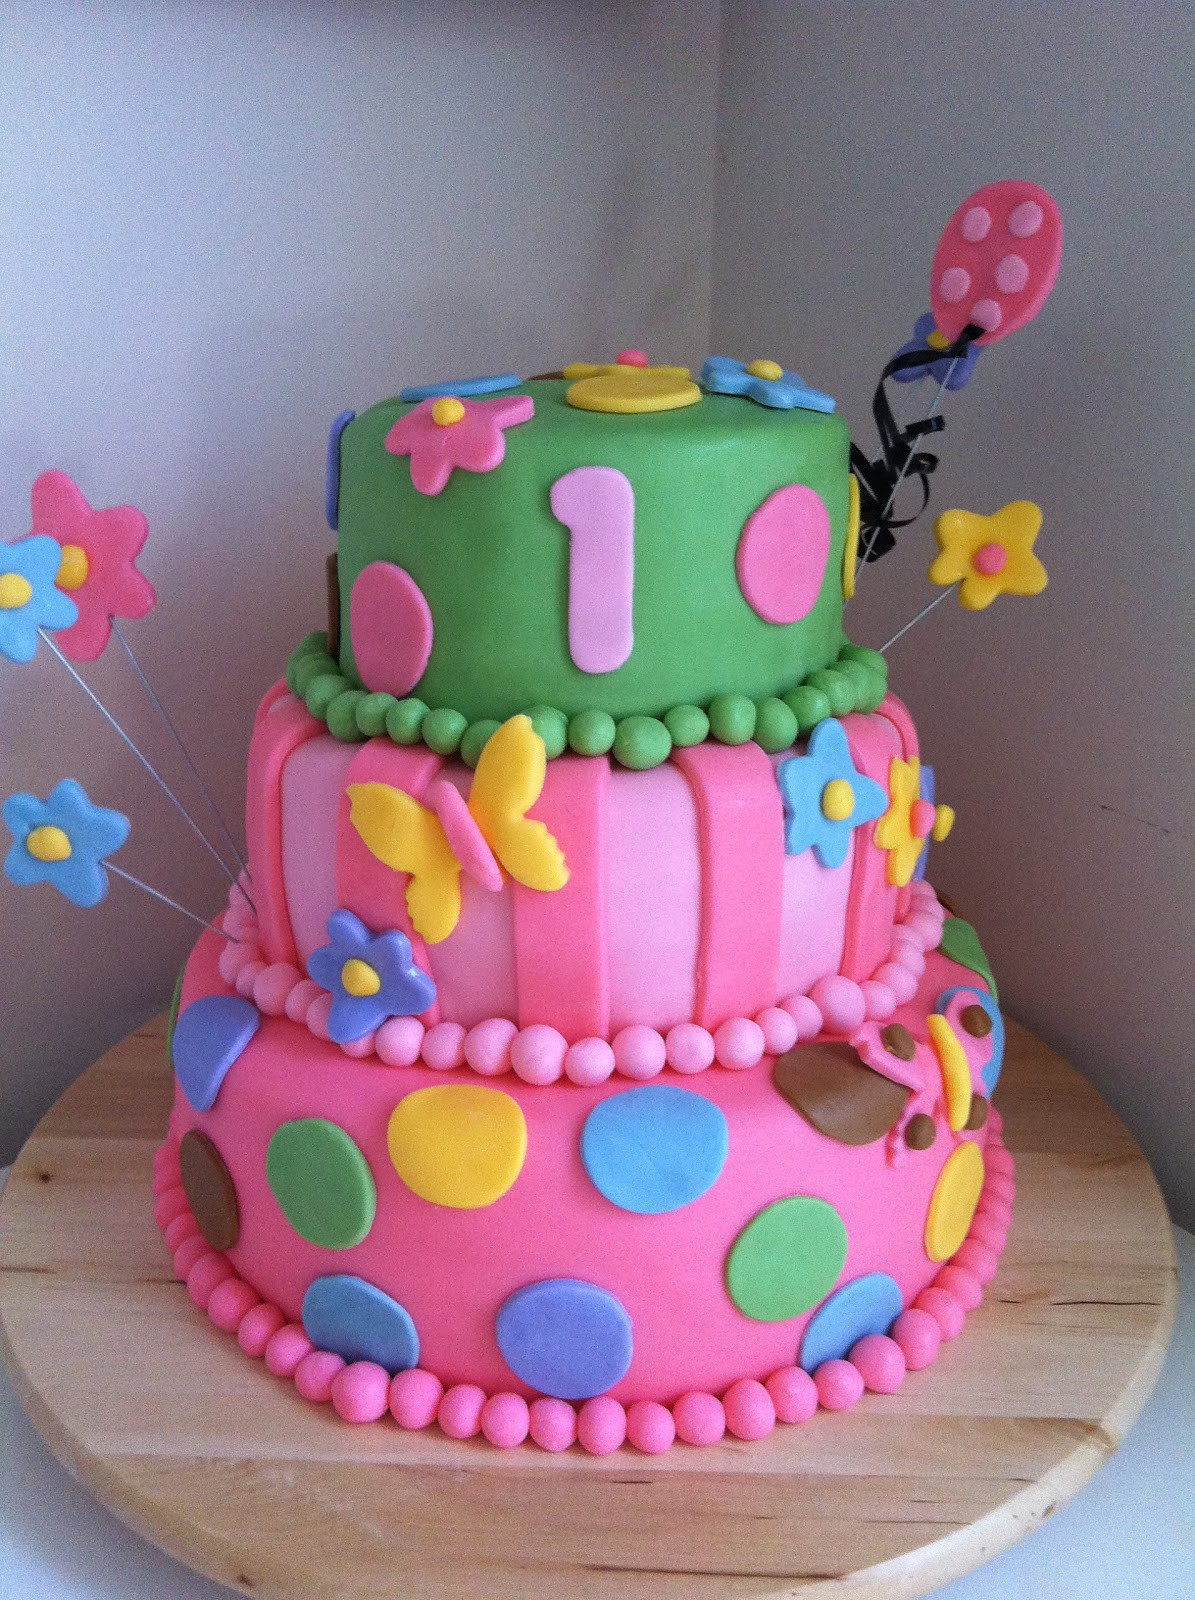 Best ideas about Birthday Cake For Girls . Save or Pin Sweetness by D 1st Birthday Cakes for girls Now.